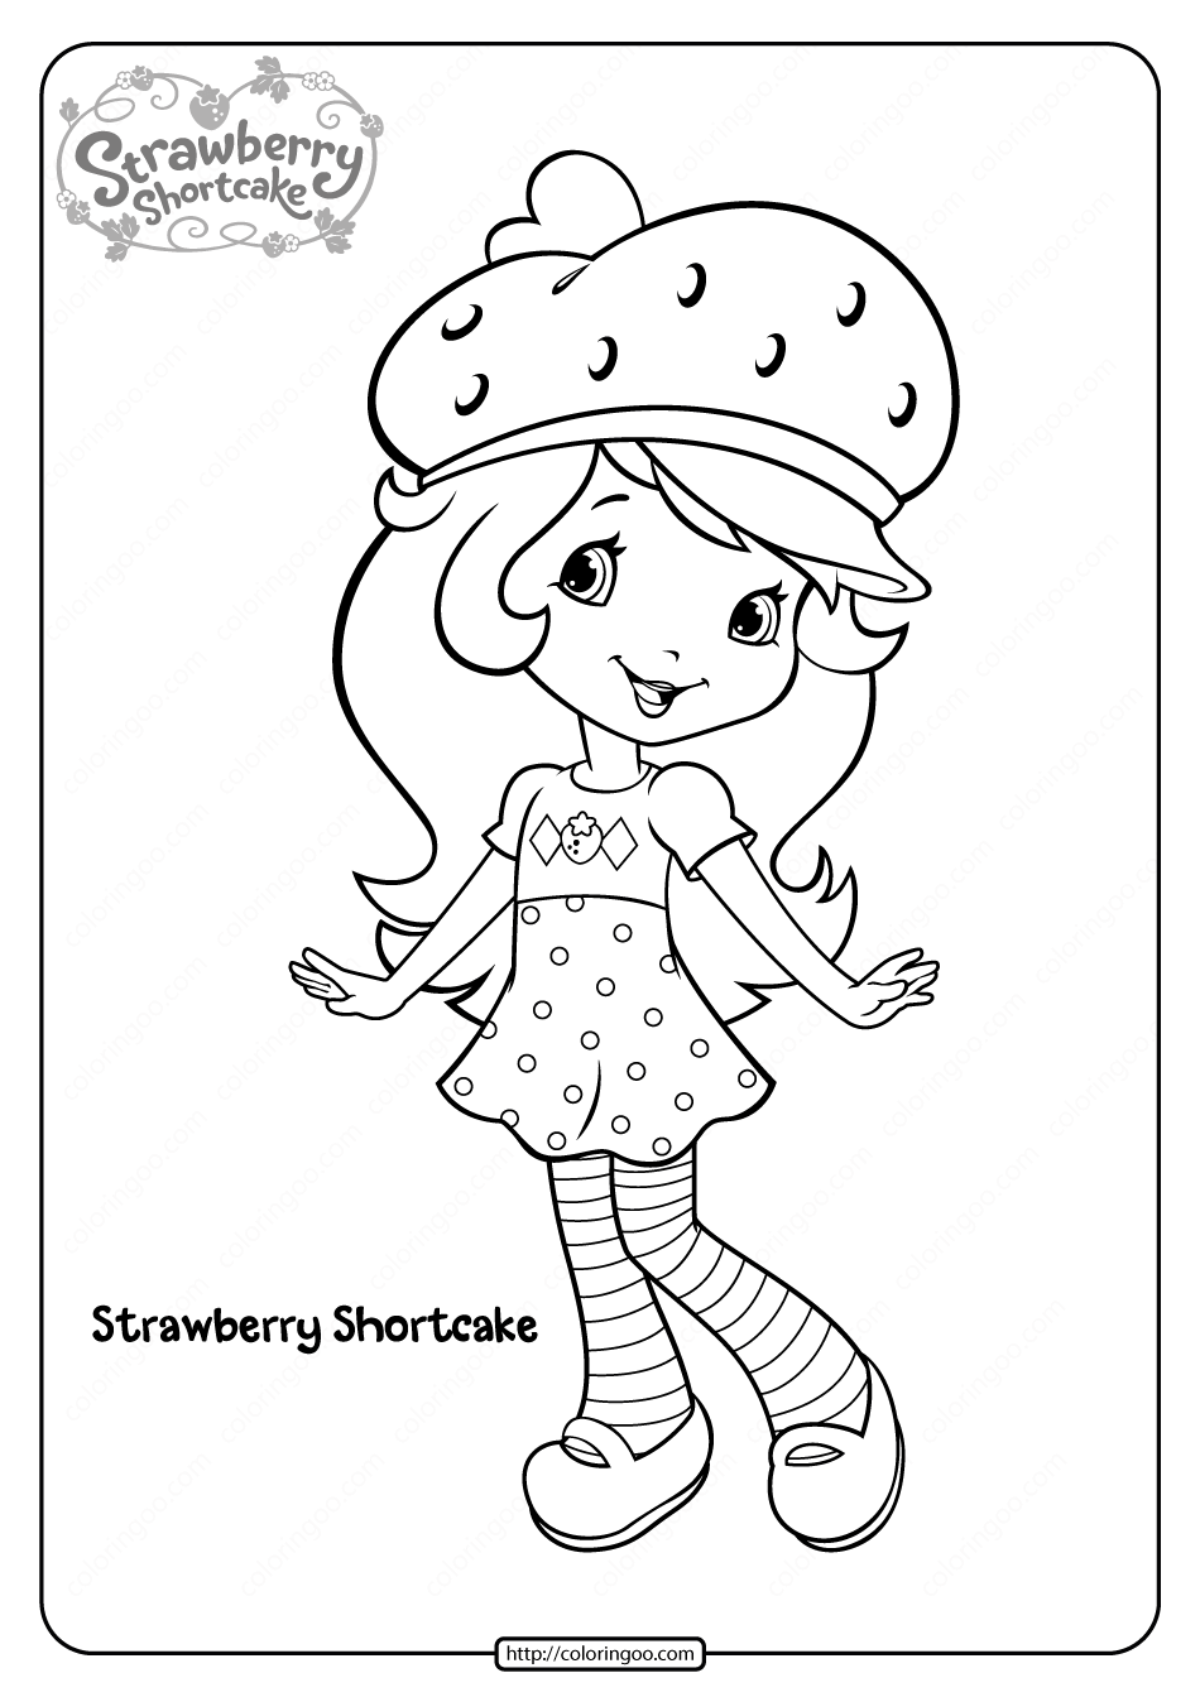 Strawberry Shortcake Printable Coloring Page | Mama Likes This | 1697x1200